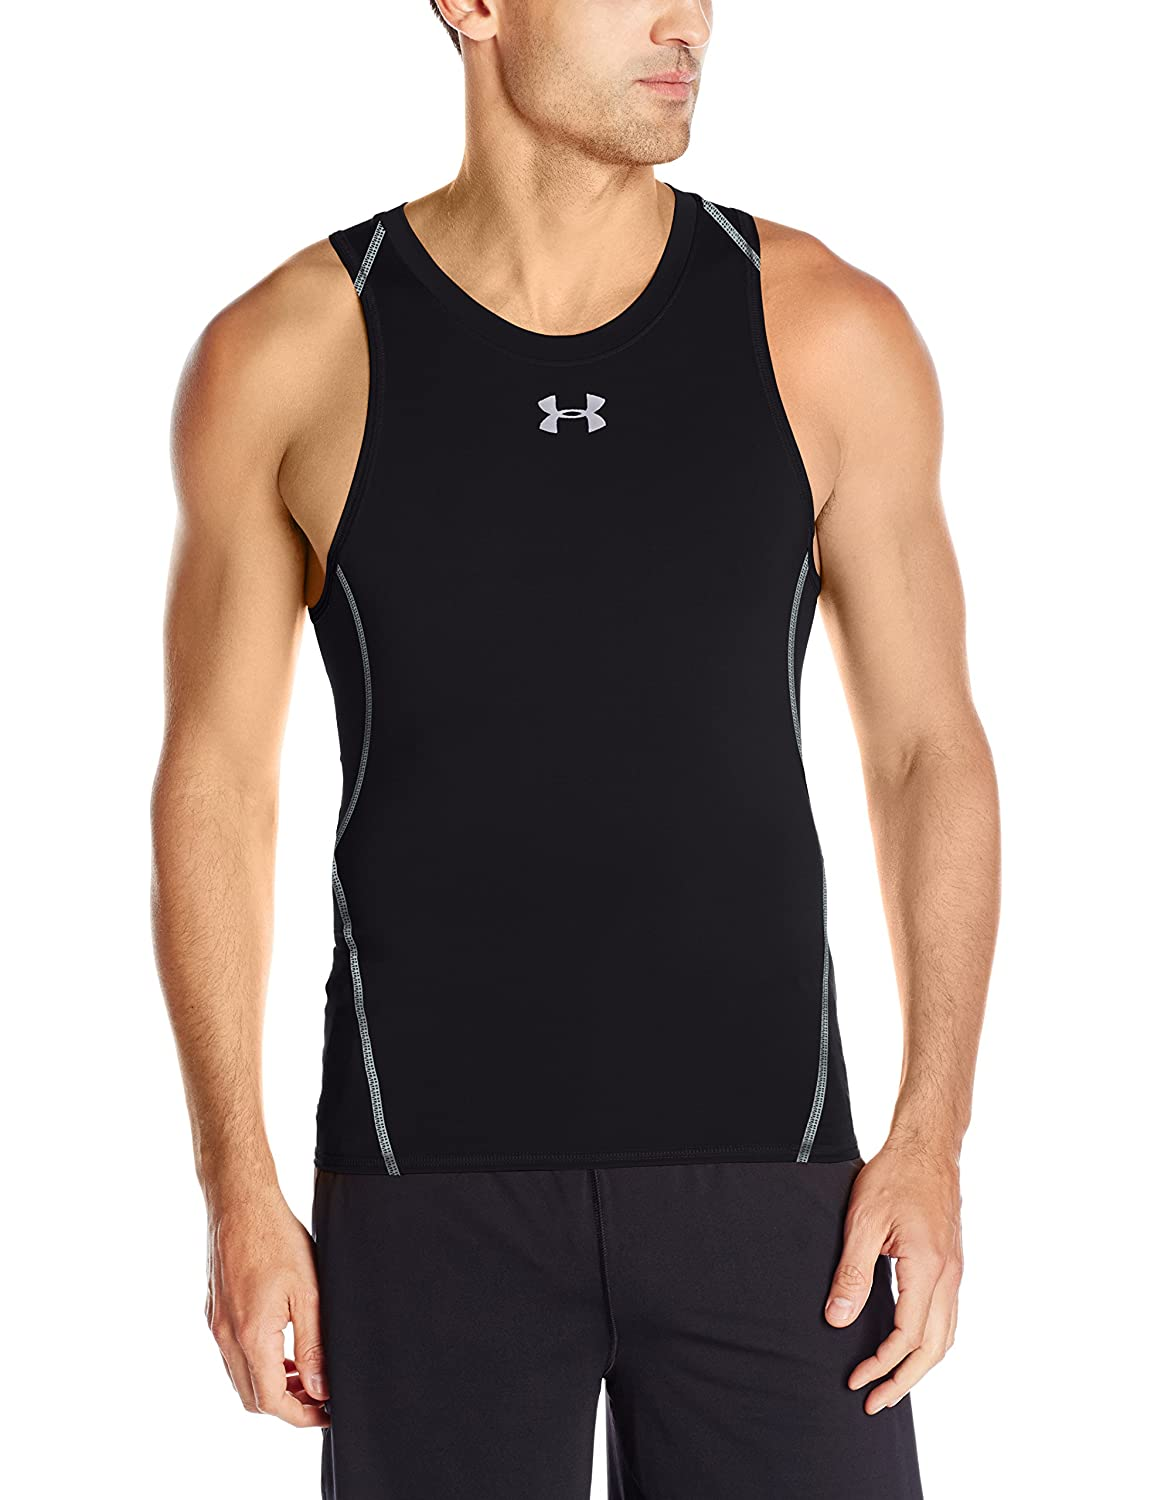 Mens Basic Solid Tank Top Jersey Casual Shirts (Size Upto 3XL